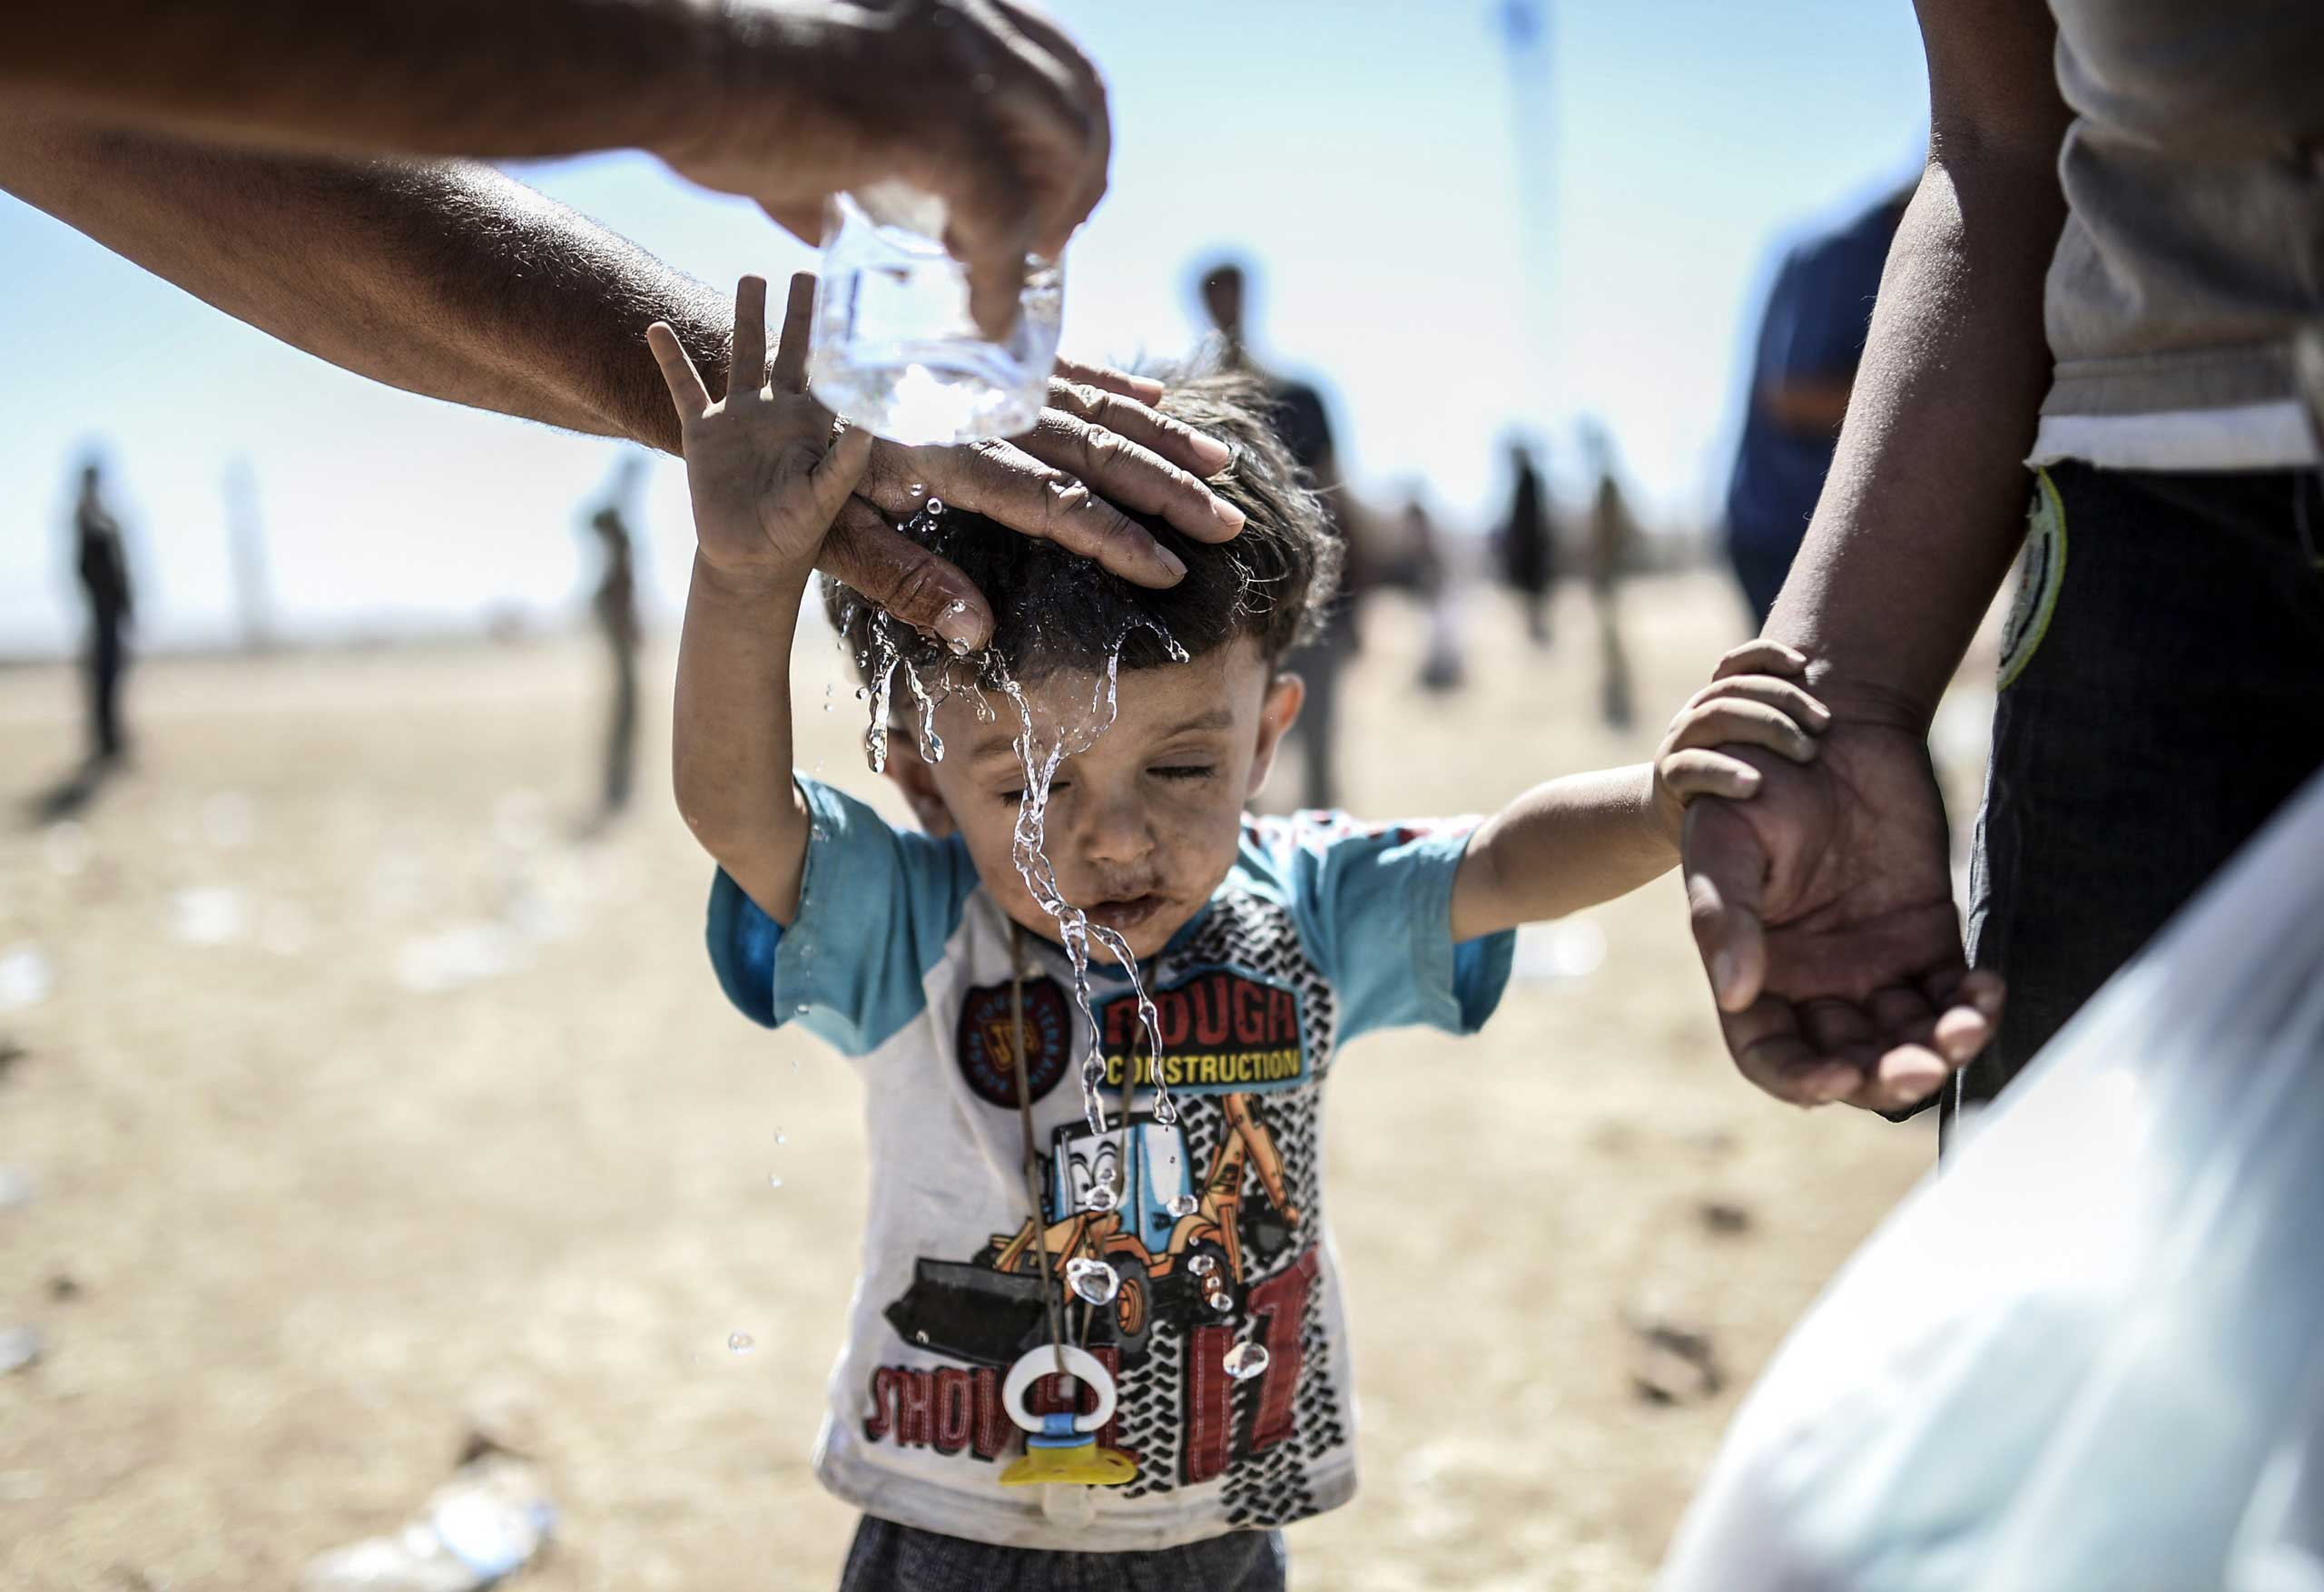 A Syrian Kurd pours water on a child after they crossed the border between Syria and Turkey near the southeastern town of Suruc in Sanliurfa province, on Sept. 20, 2014.